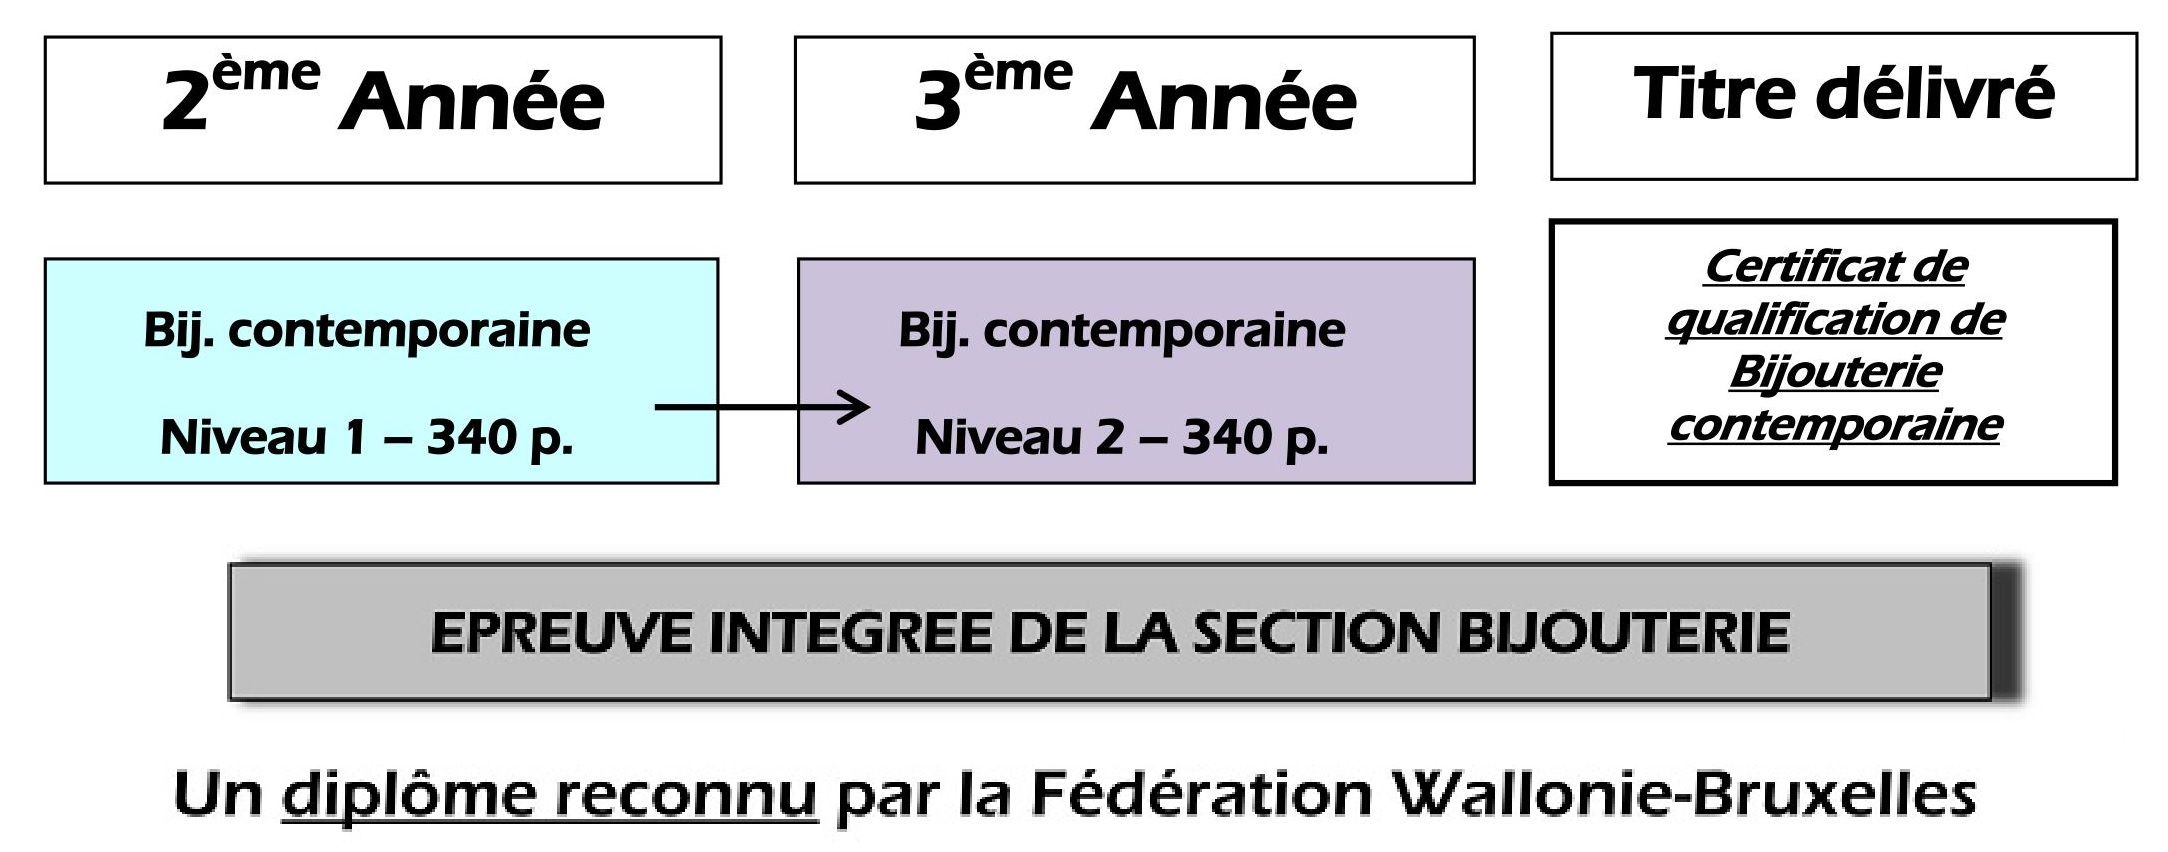 Bijouterie Contemporaine – Organigramme de la section